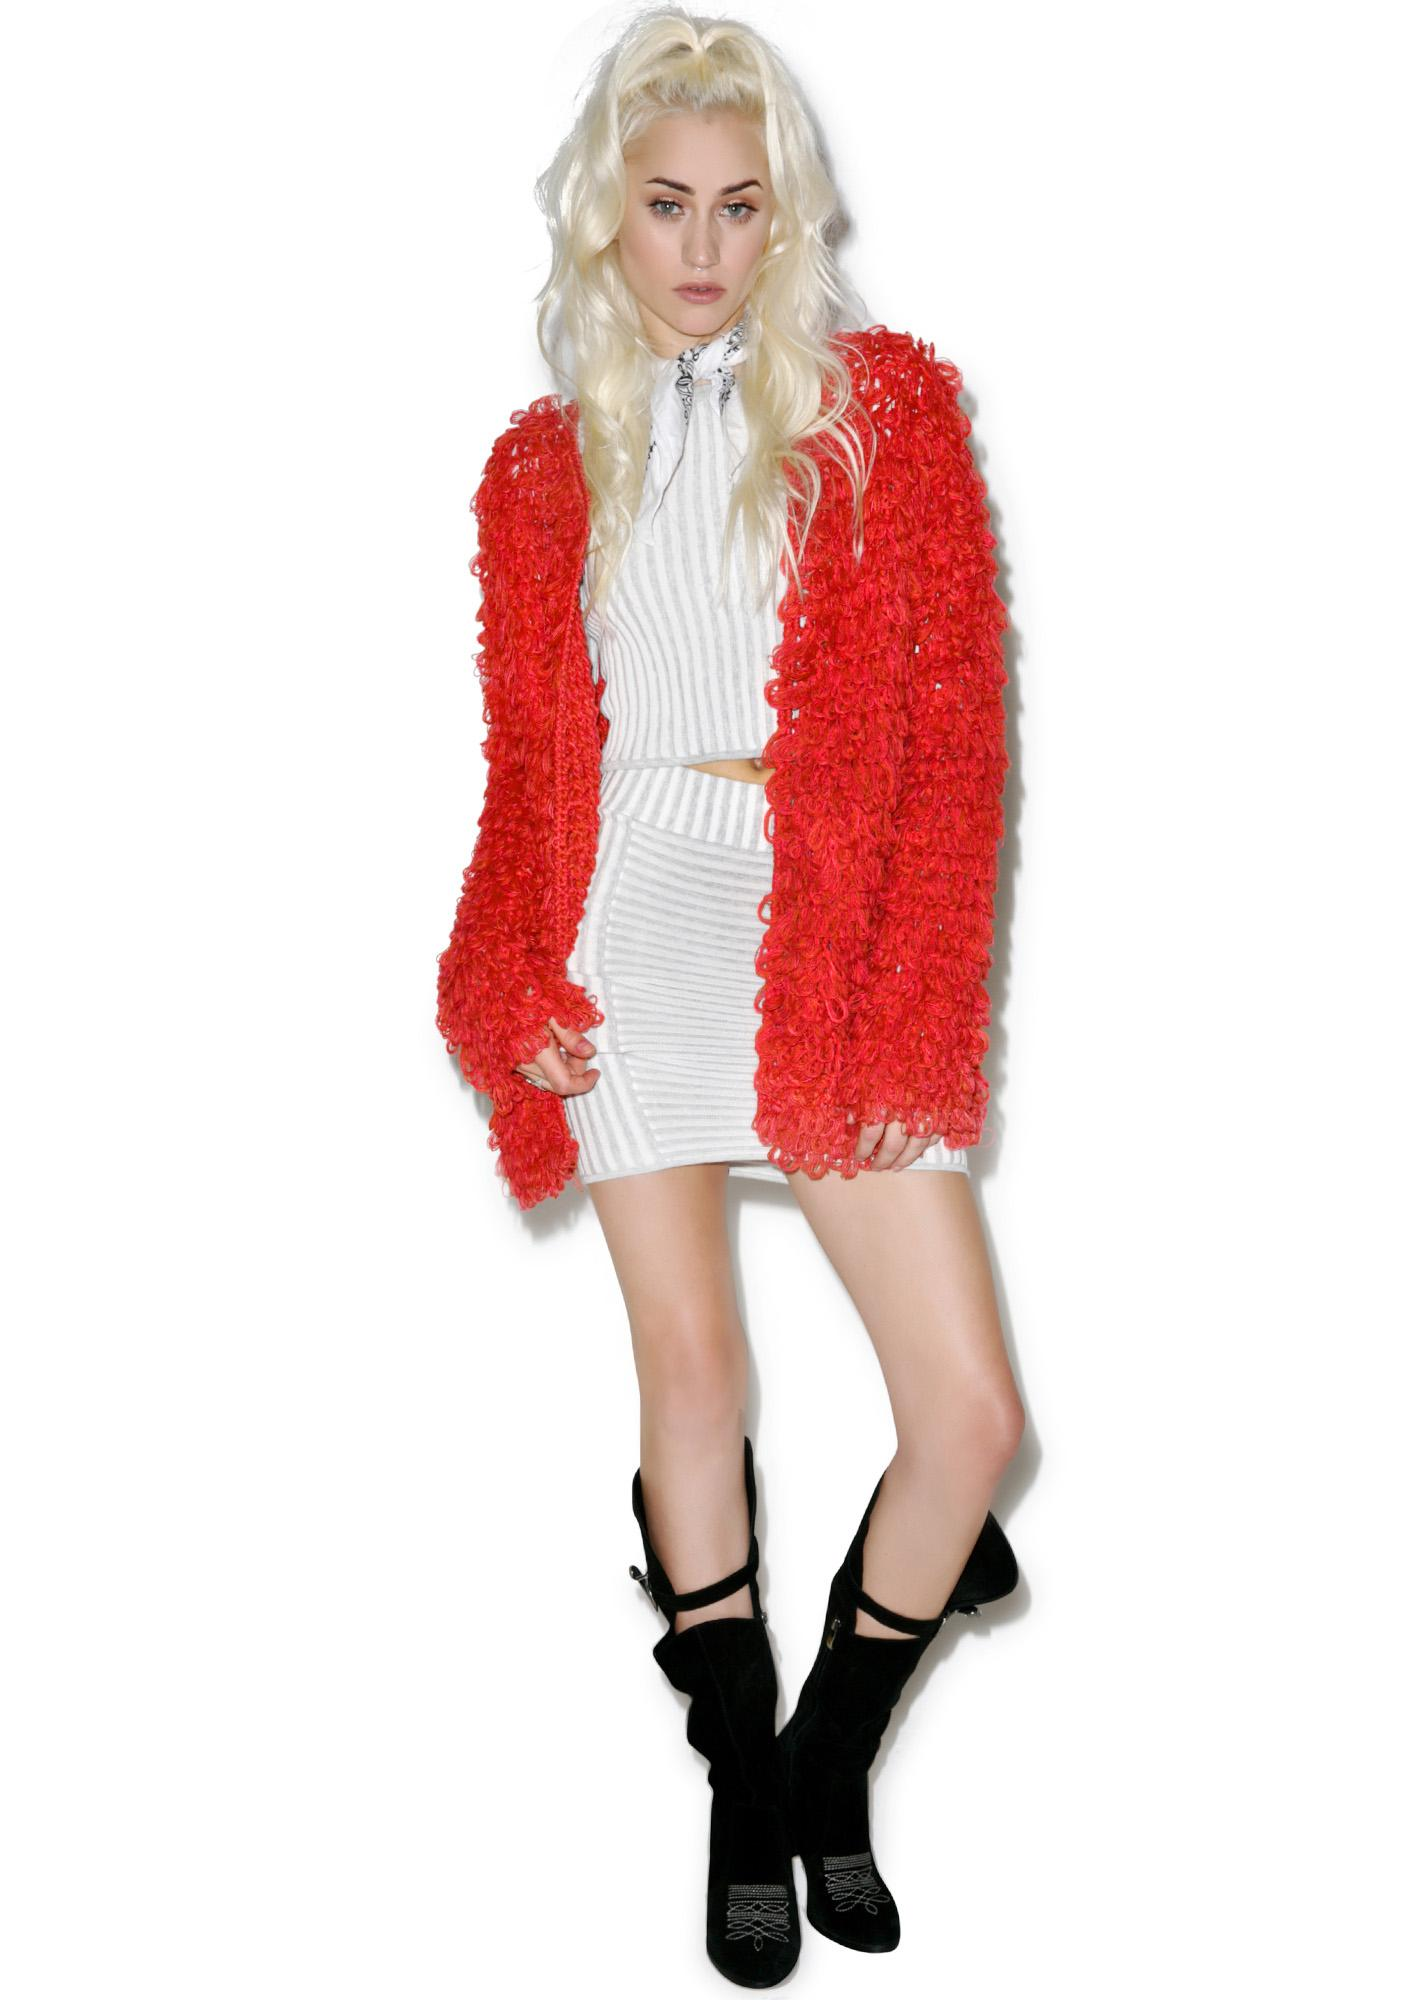 For Love & Lemons Joplin Cardi